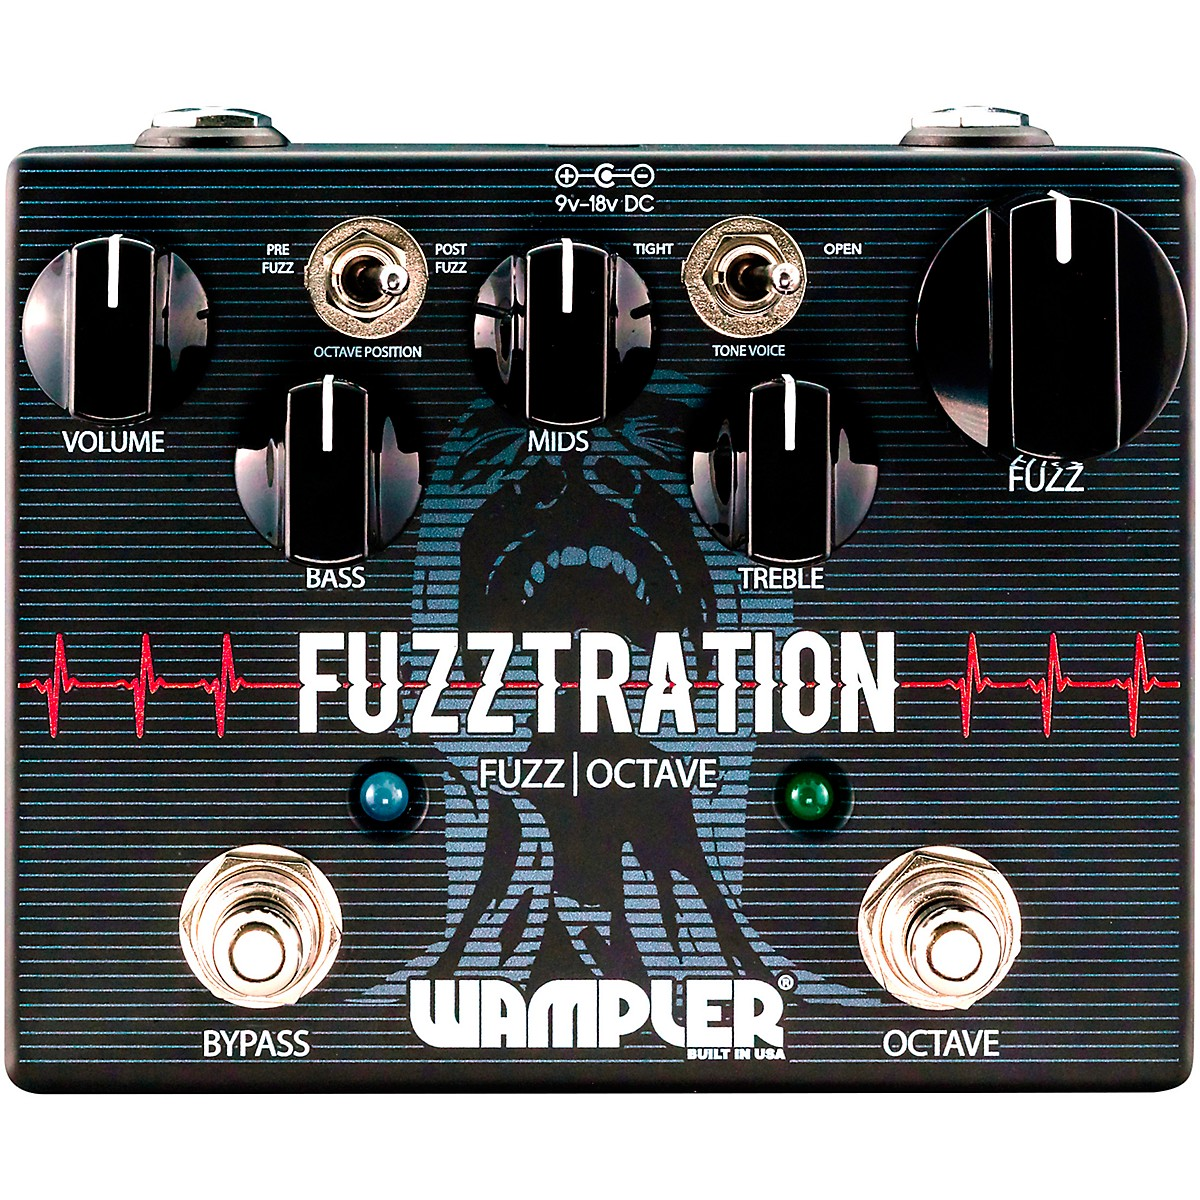 Wampler Fuzztration Fuzz Octave Guitar Effects Pedal